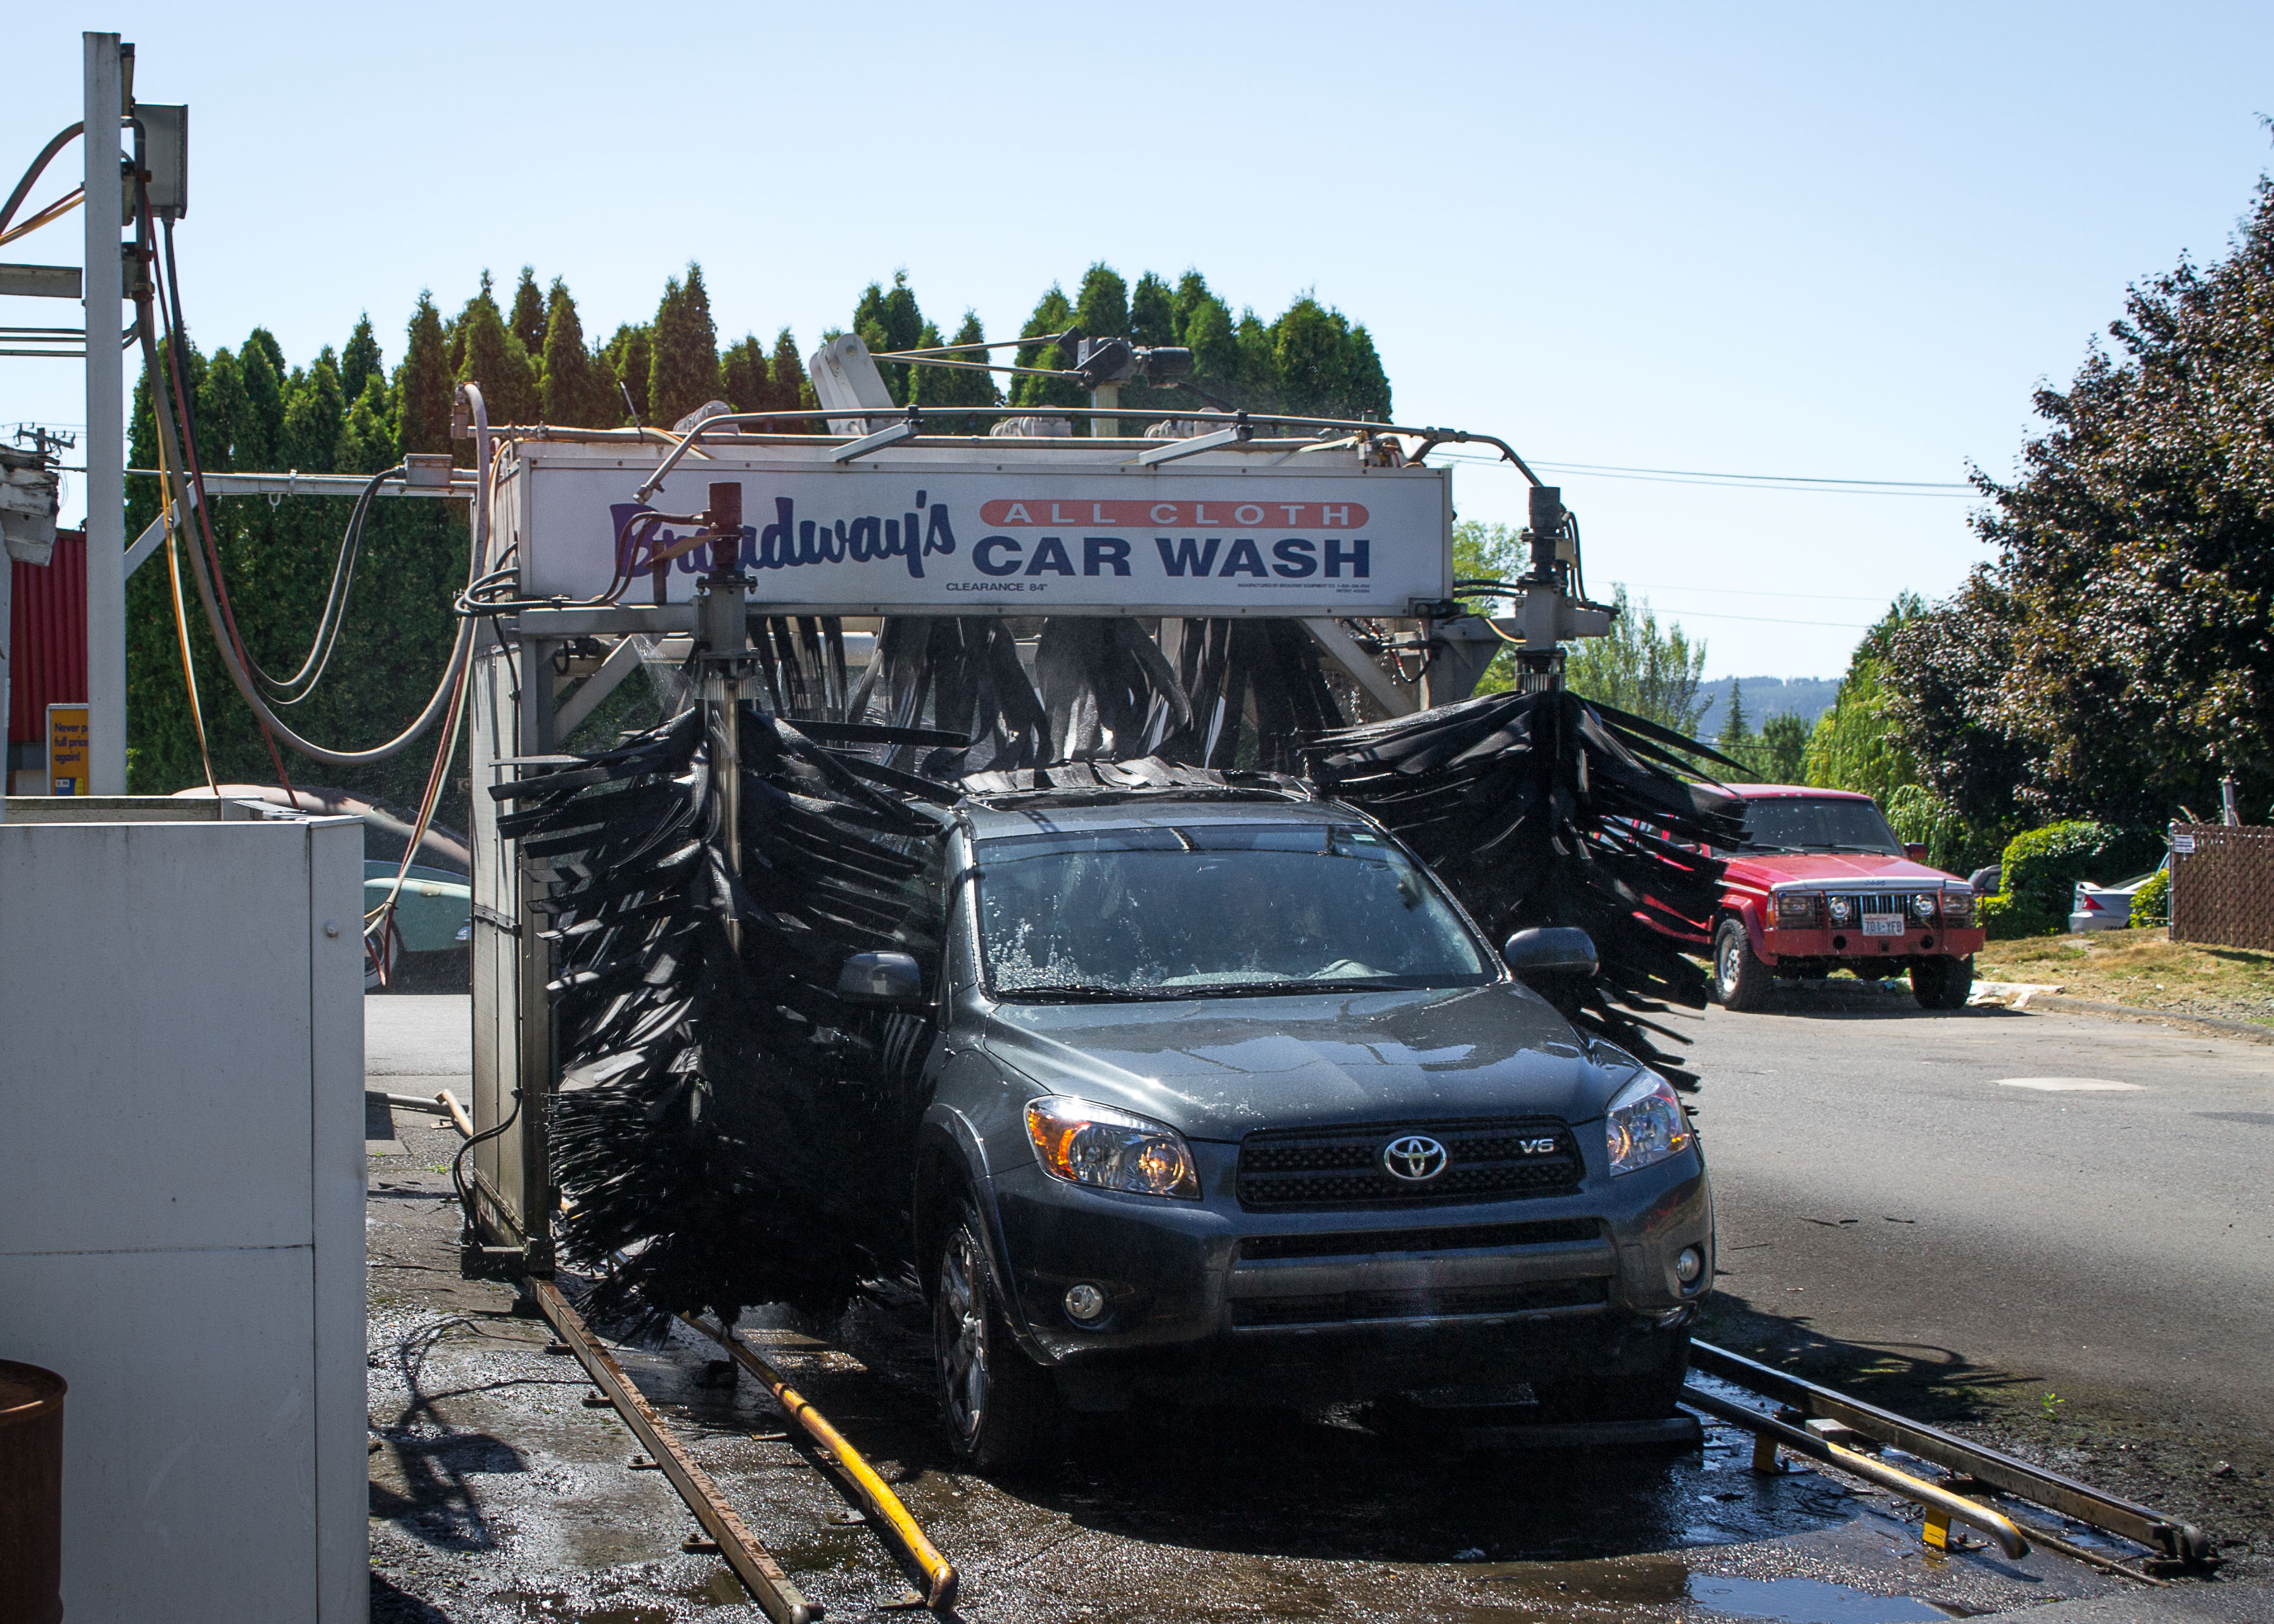 Broadway Car Wash Little Rock Ar